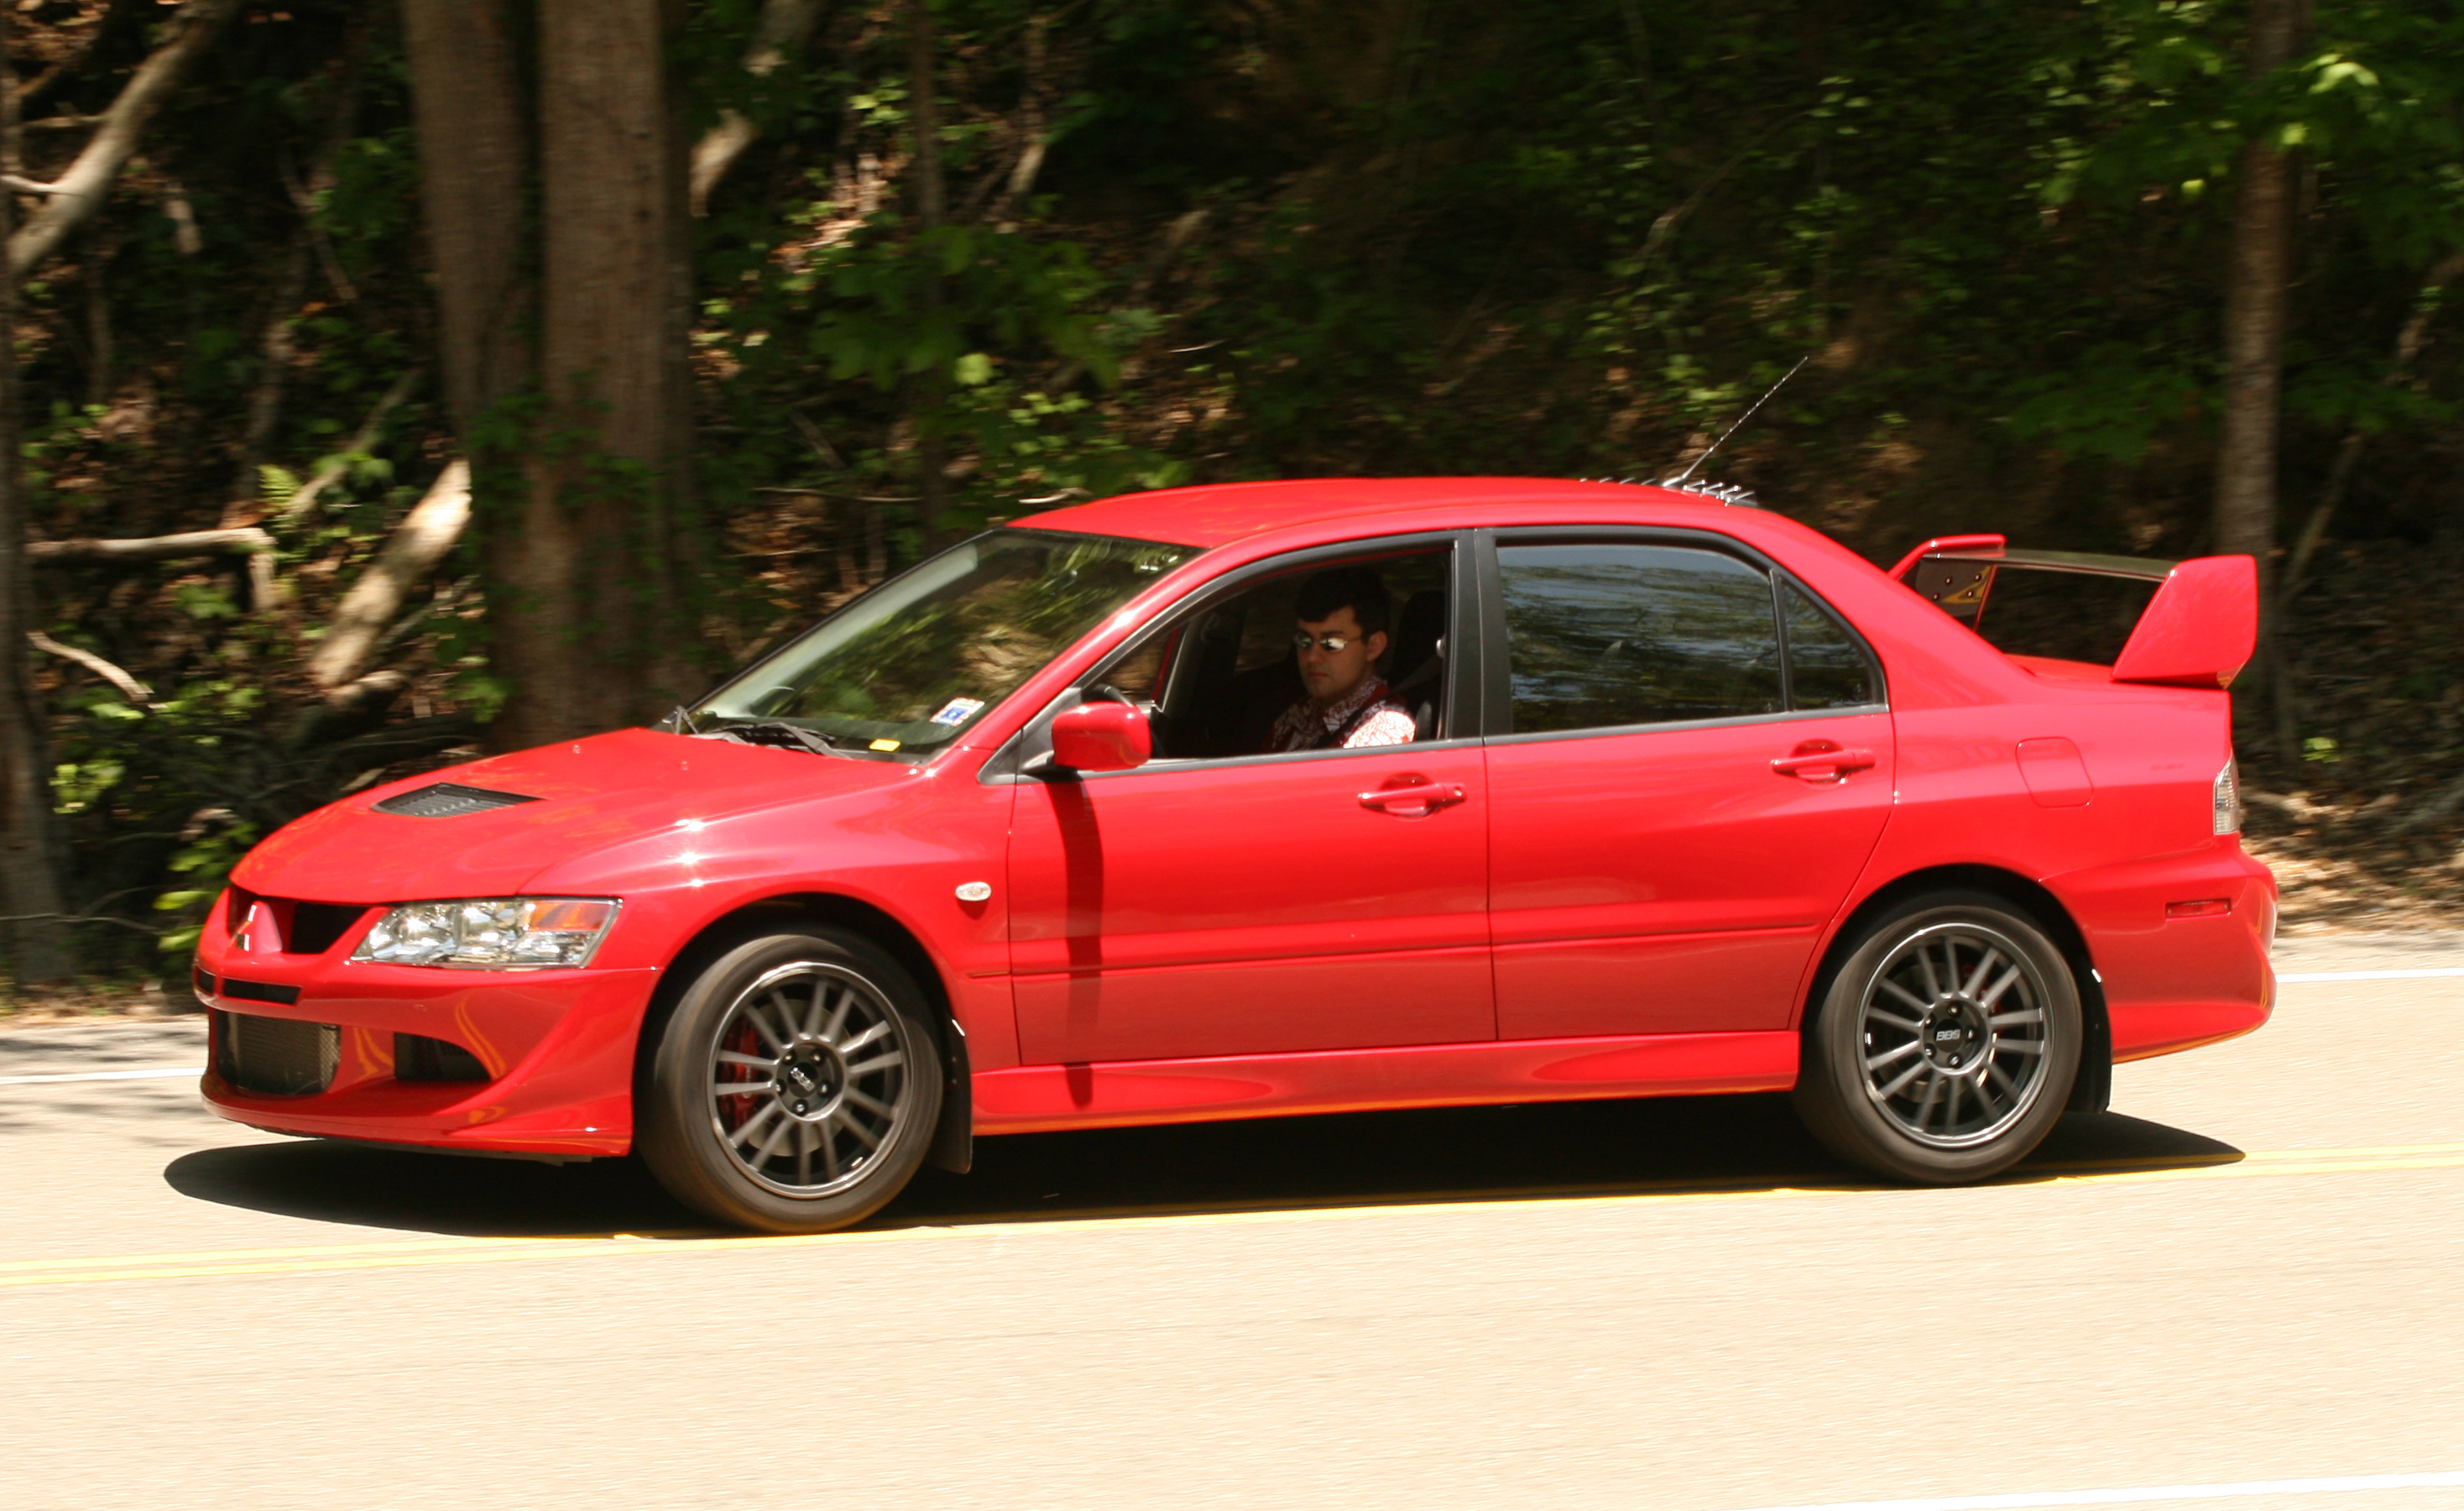 2005 Mitsubishi Lancer Evolution VIII MR (US Spec) at Dvx cnceal's Gap,  North